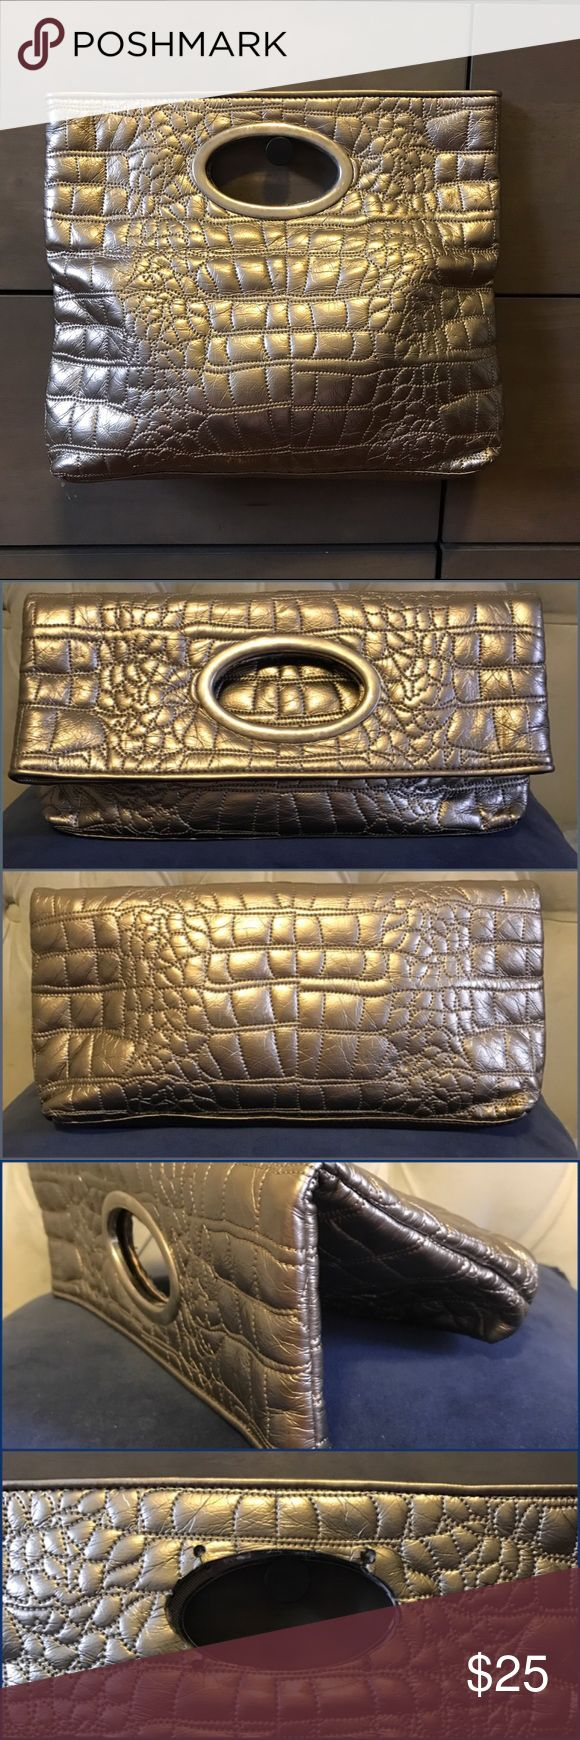 CARLOS  Folding Clutch Pale Gold, Snake Texture Cute clutch, pale gold color - not over the top. One metal handle is missing as shown in pics - not so noticeable especially when folded. Carlos Santana Bags Clutches & Wristlets